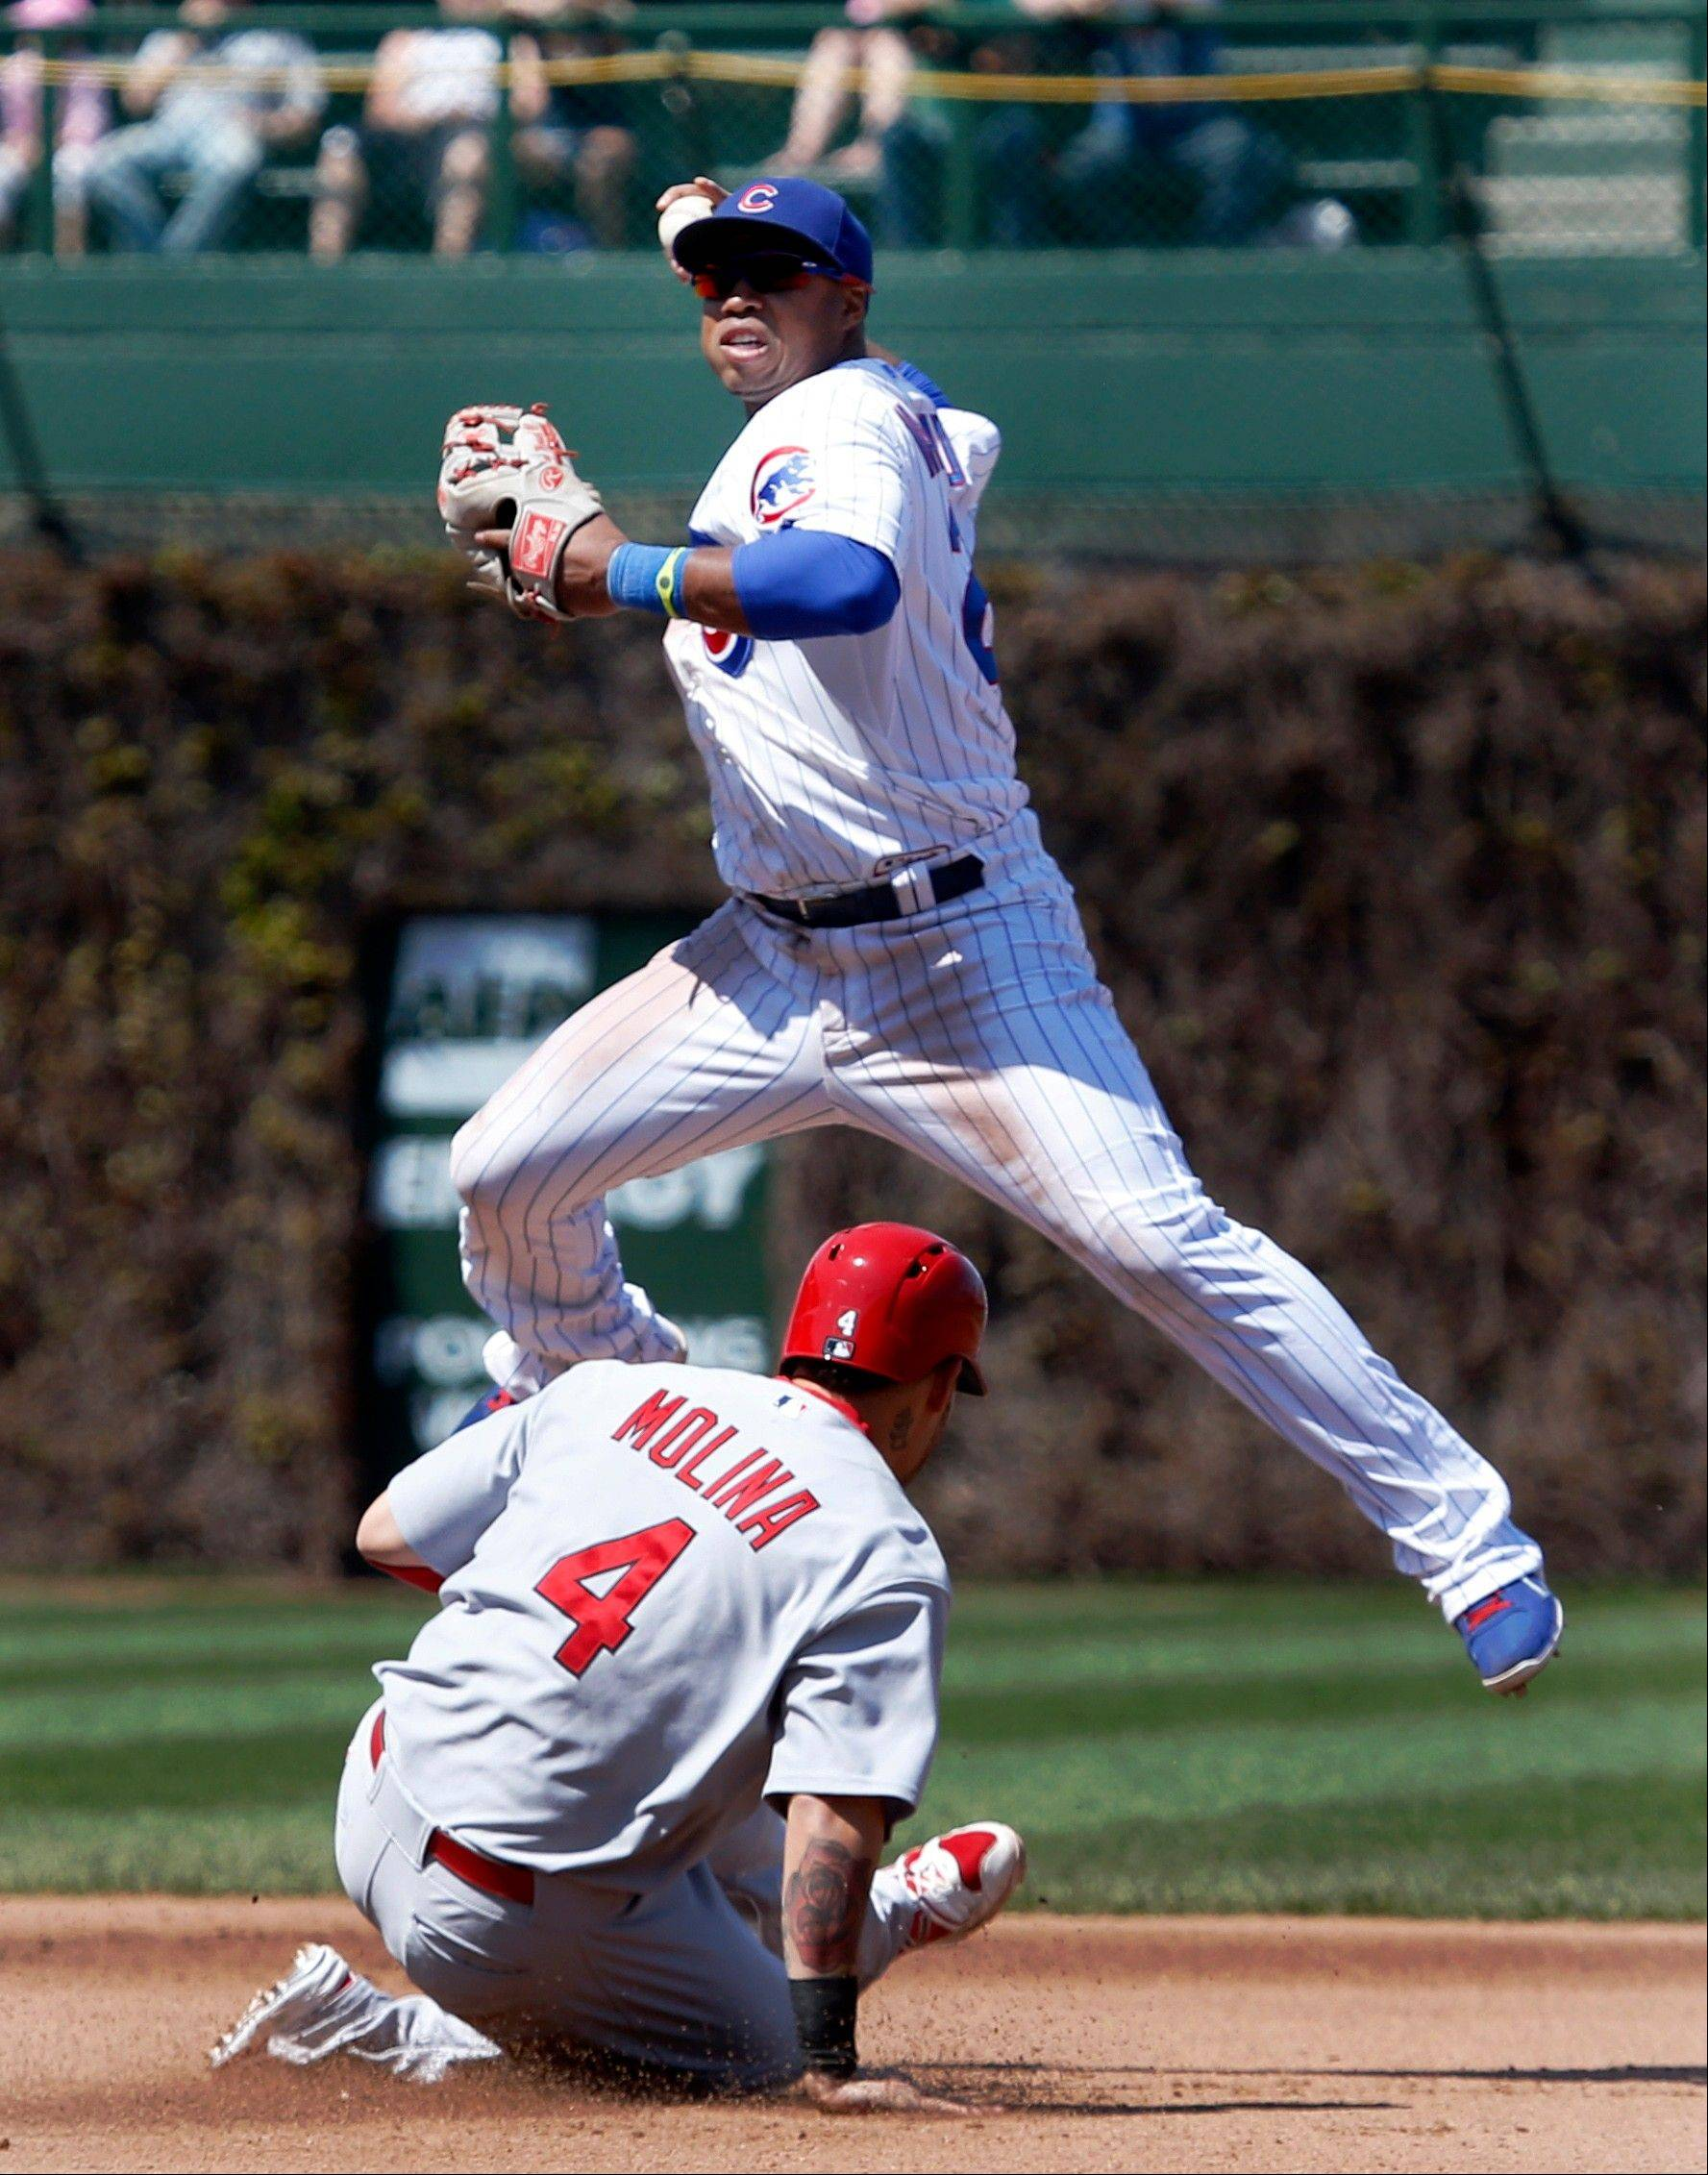 Cubs second baseman Luis Valbuena turns a double play after forcing out St. Louis Cardinals' Yadier Molina Wednesday at Wrigley Field. The Cubs lost 5-4.